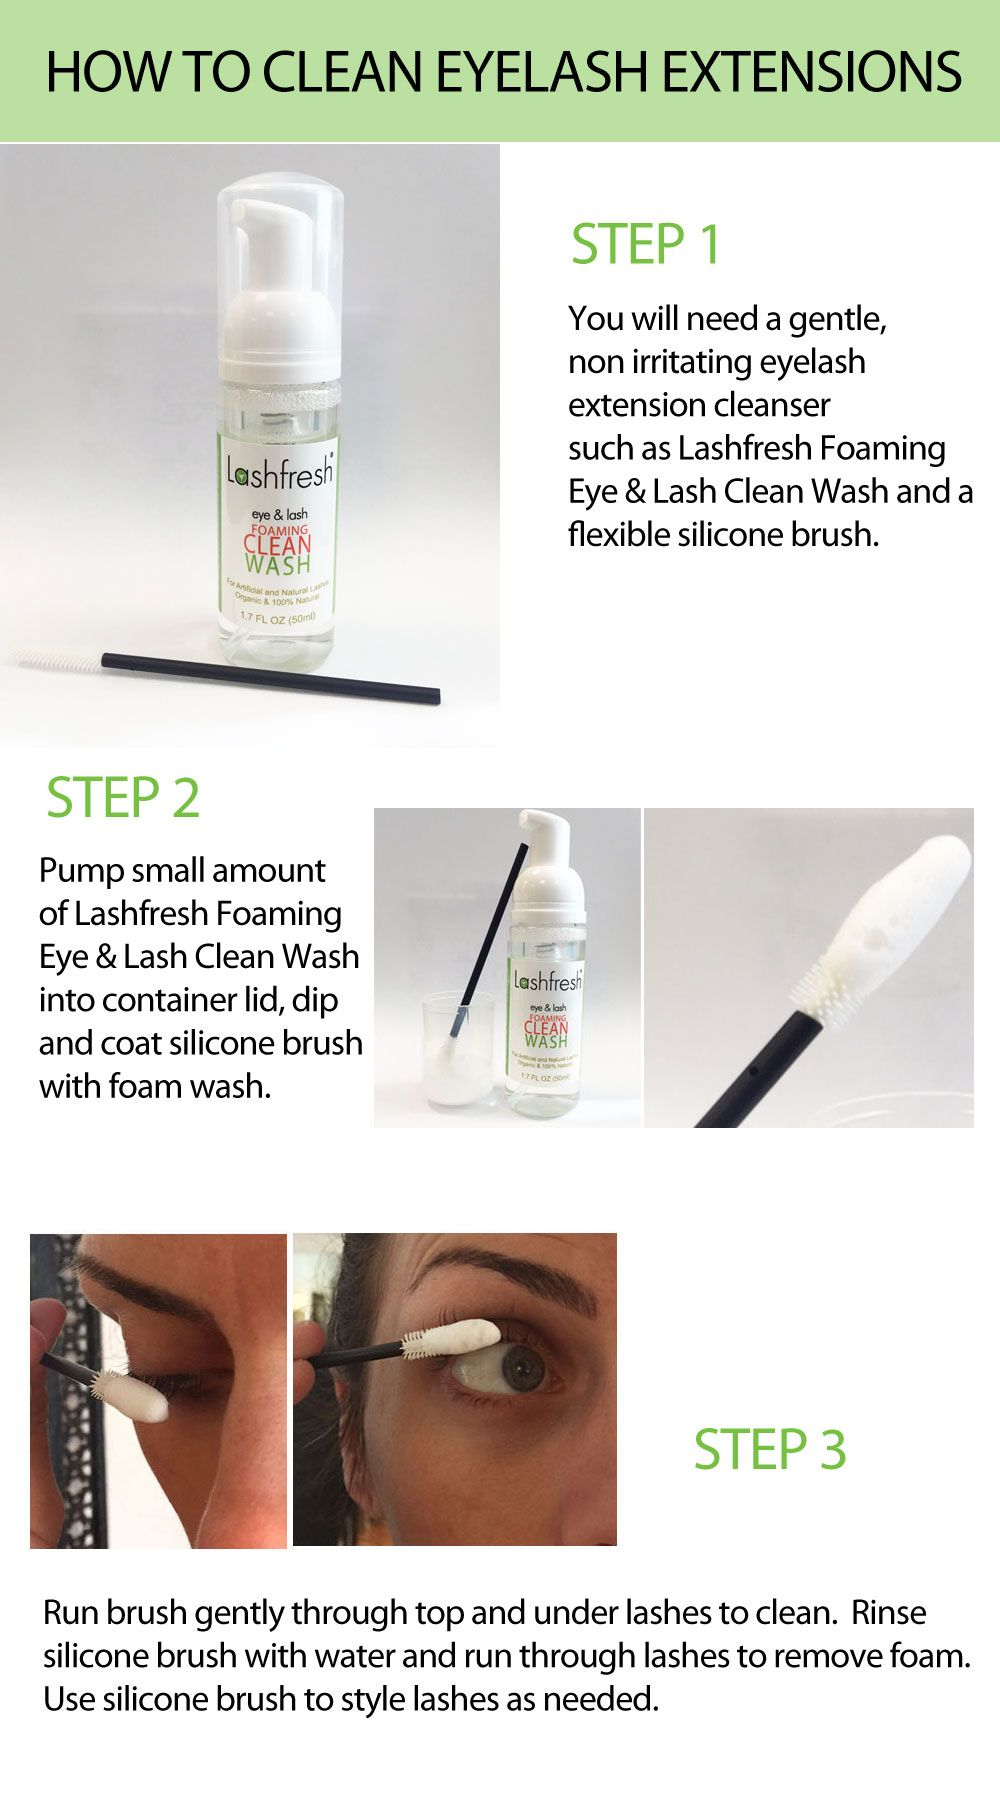 How To Clean Your Lashes With Lashfresh Foam Wash How To Clean Eyelashes Eyelash Extensions Cleaning Eyelash Extensions